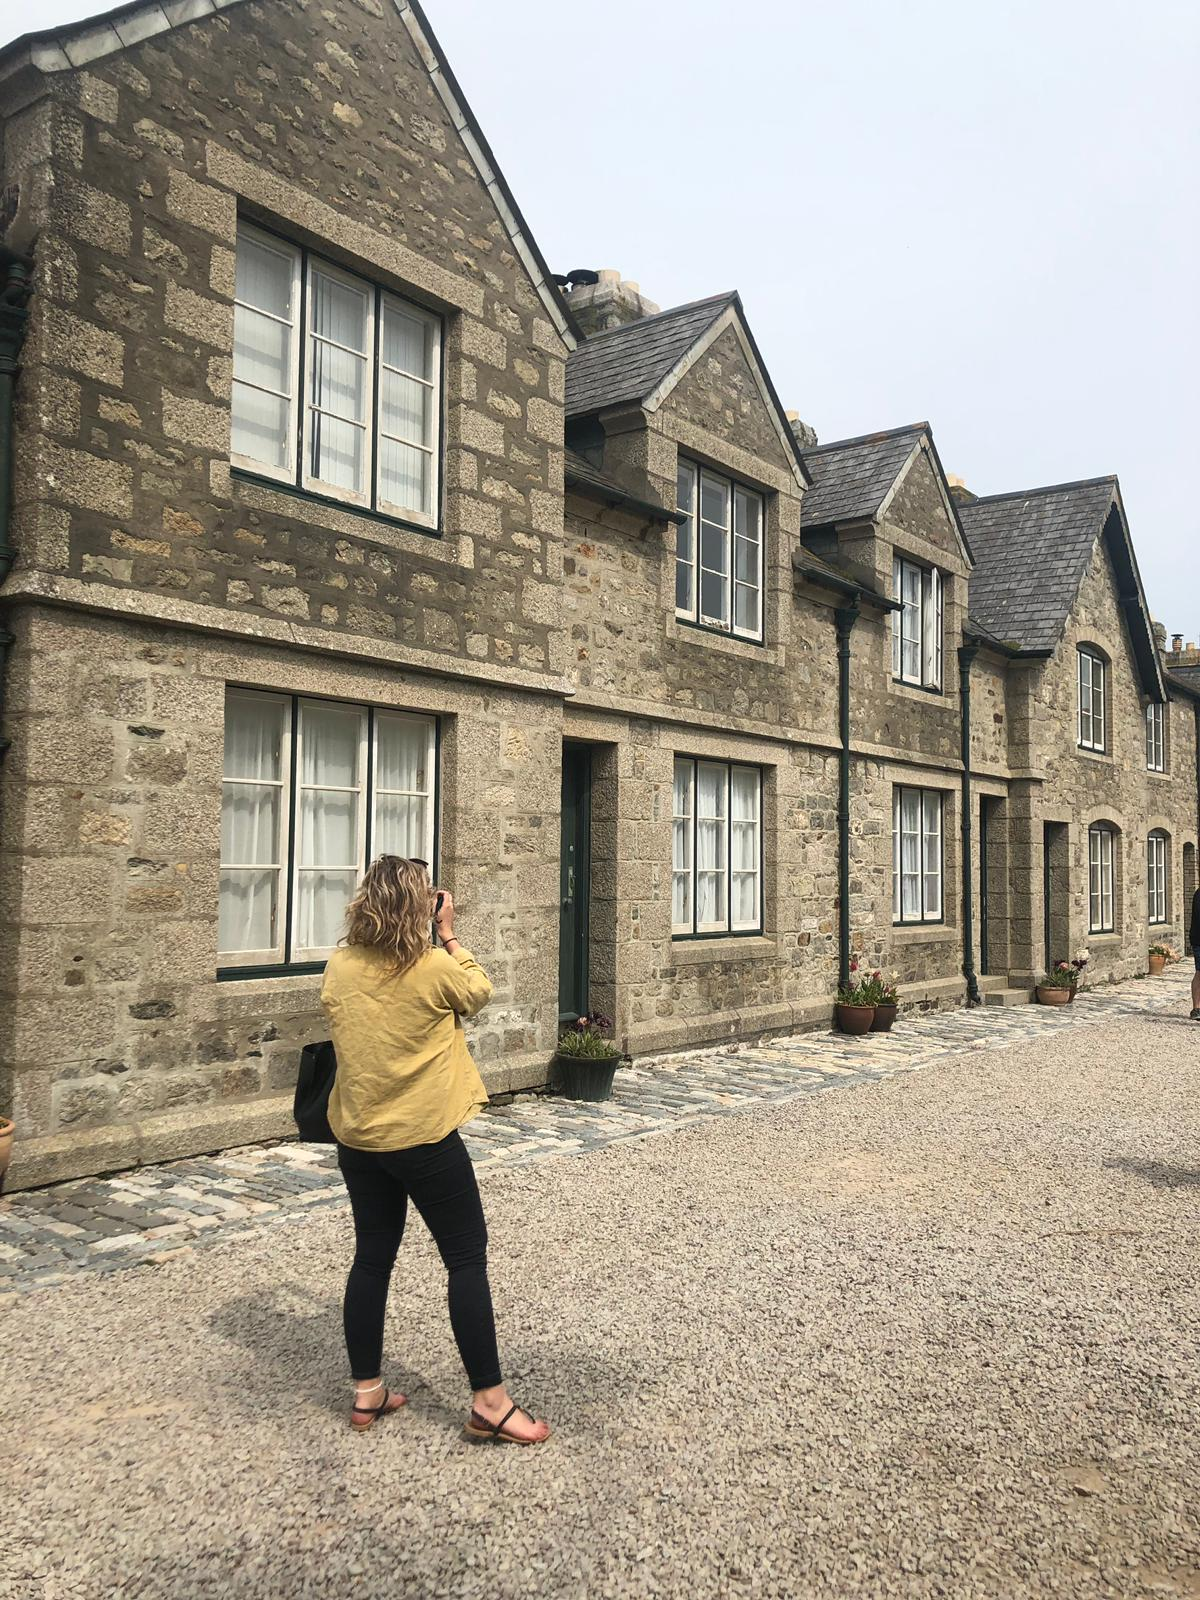 Top tips for visiting St Michael's Mount in Cornwall